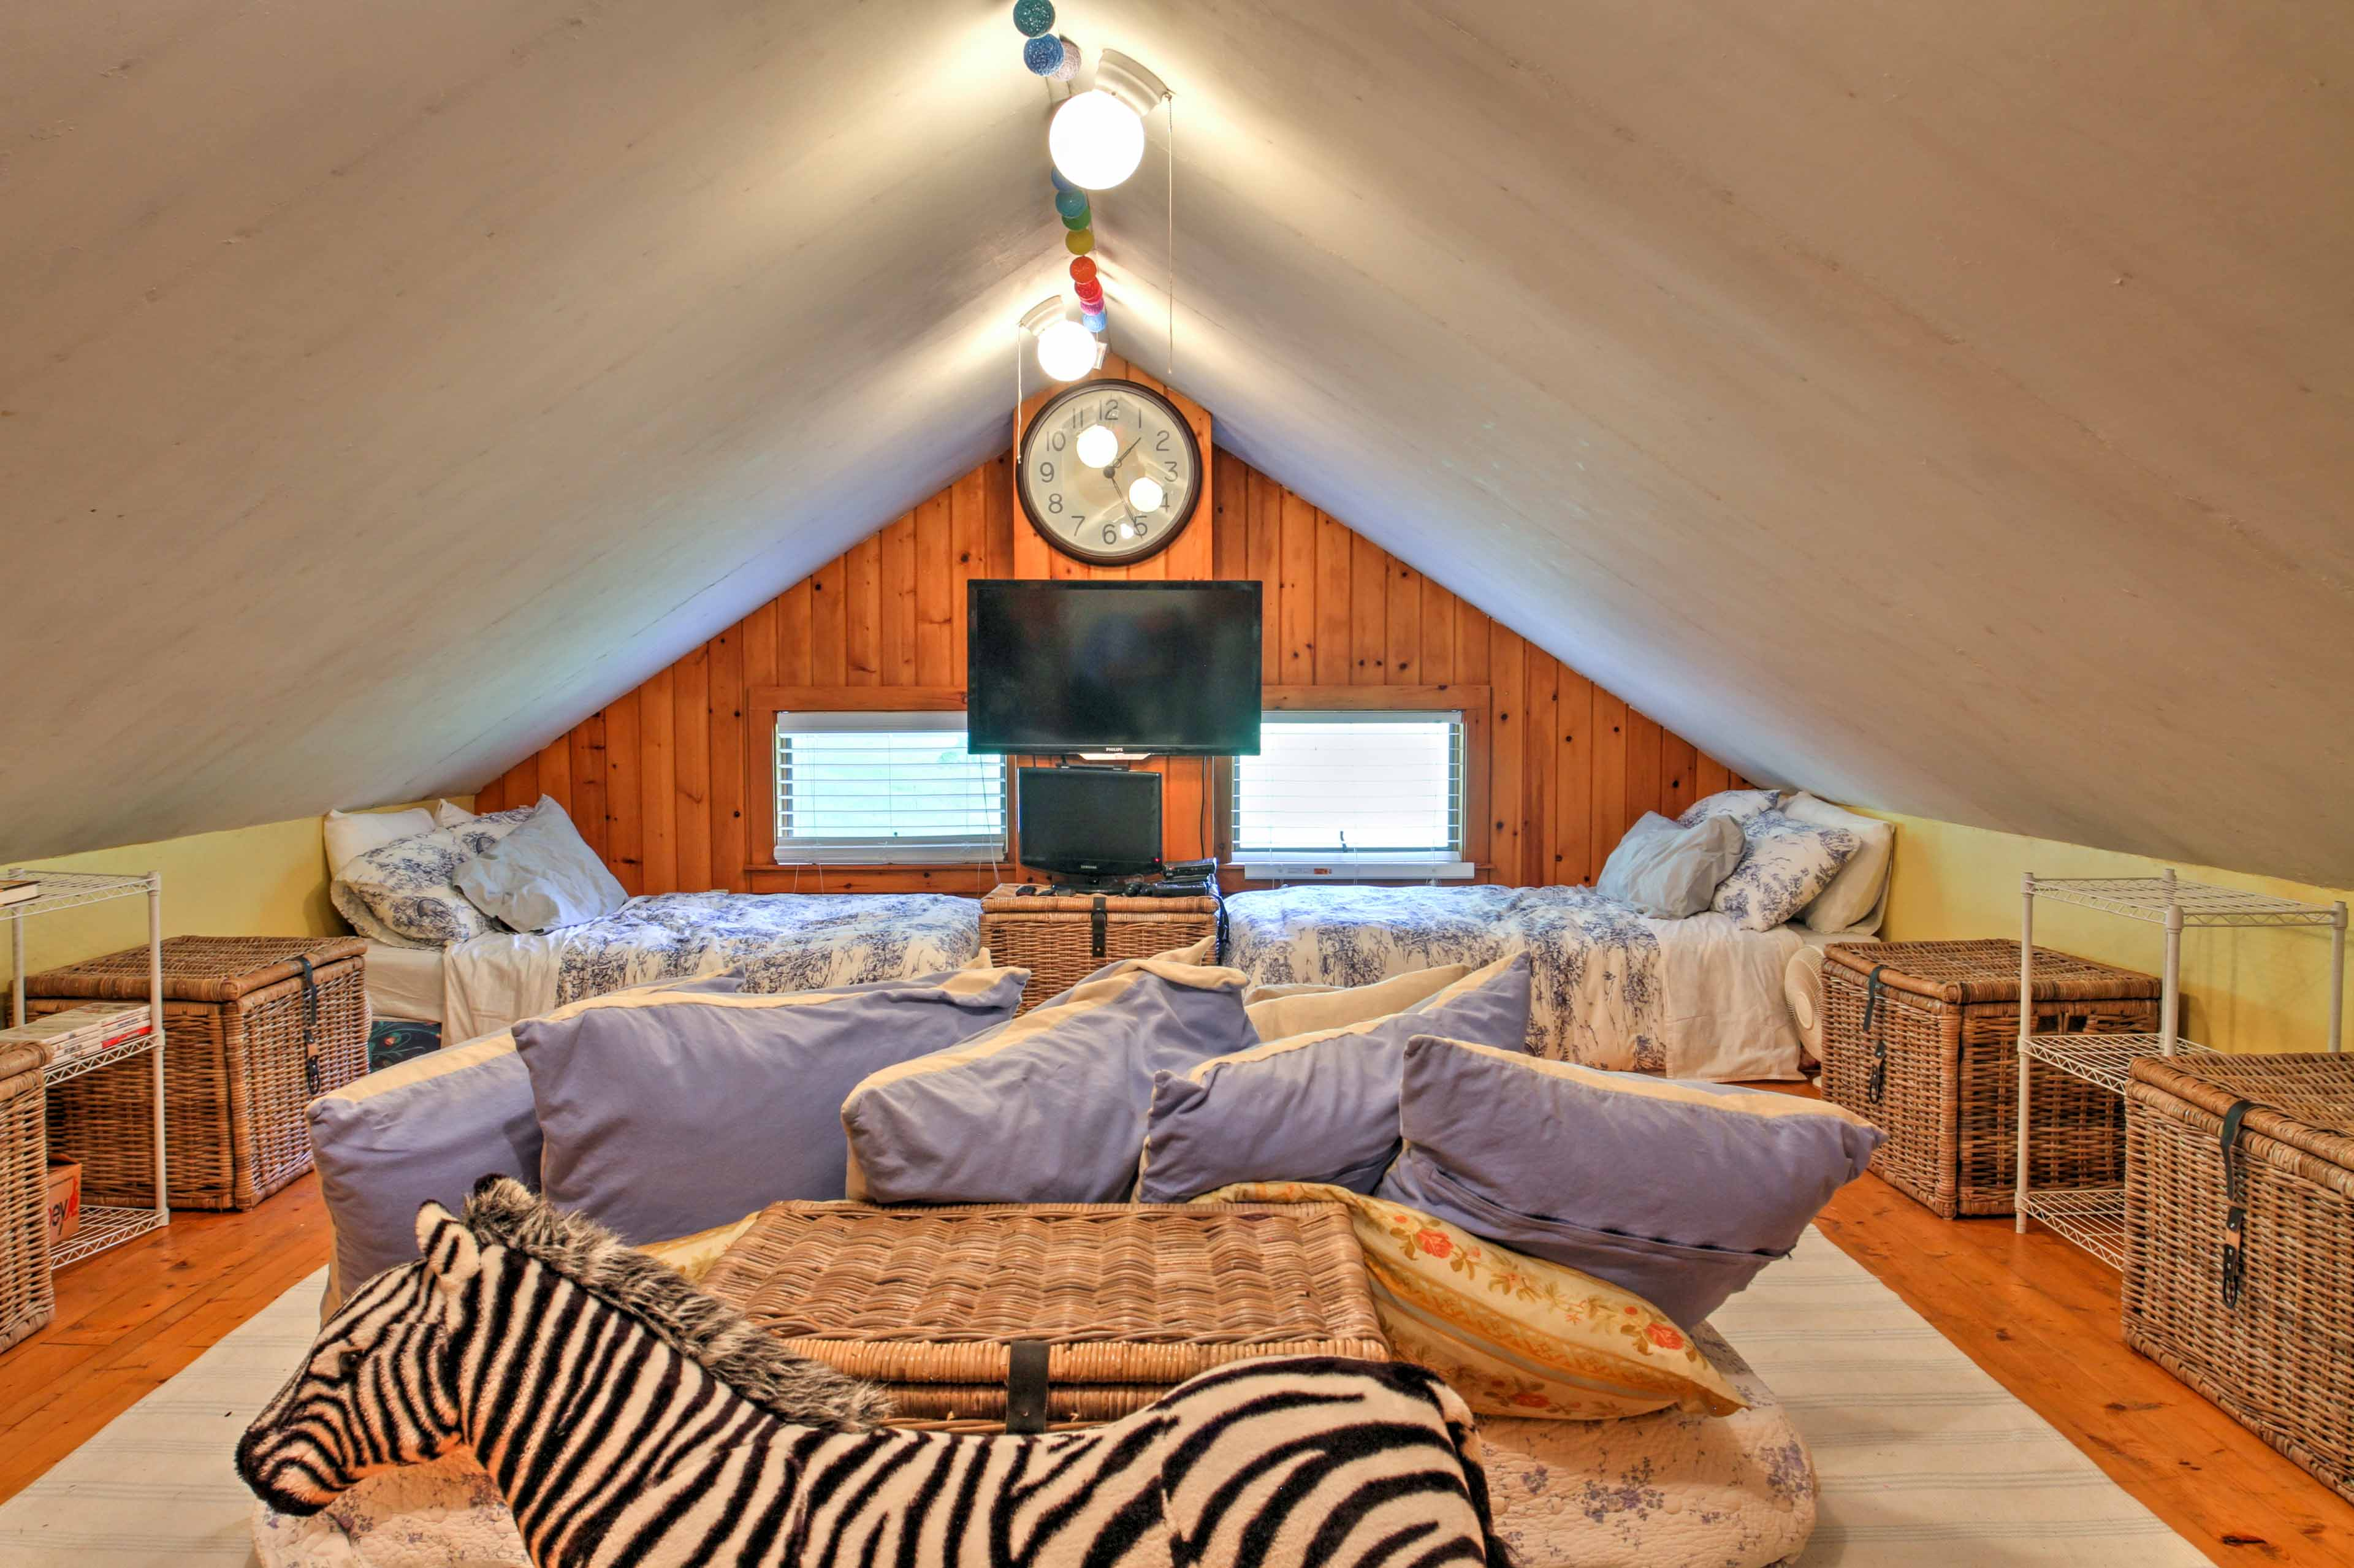 This bunk loft room contains 4 full-sized beds and 1 king-sized bed.